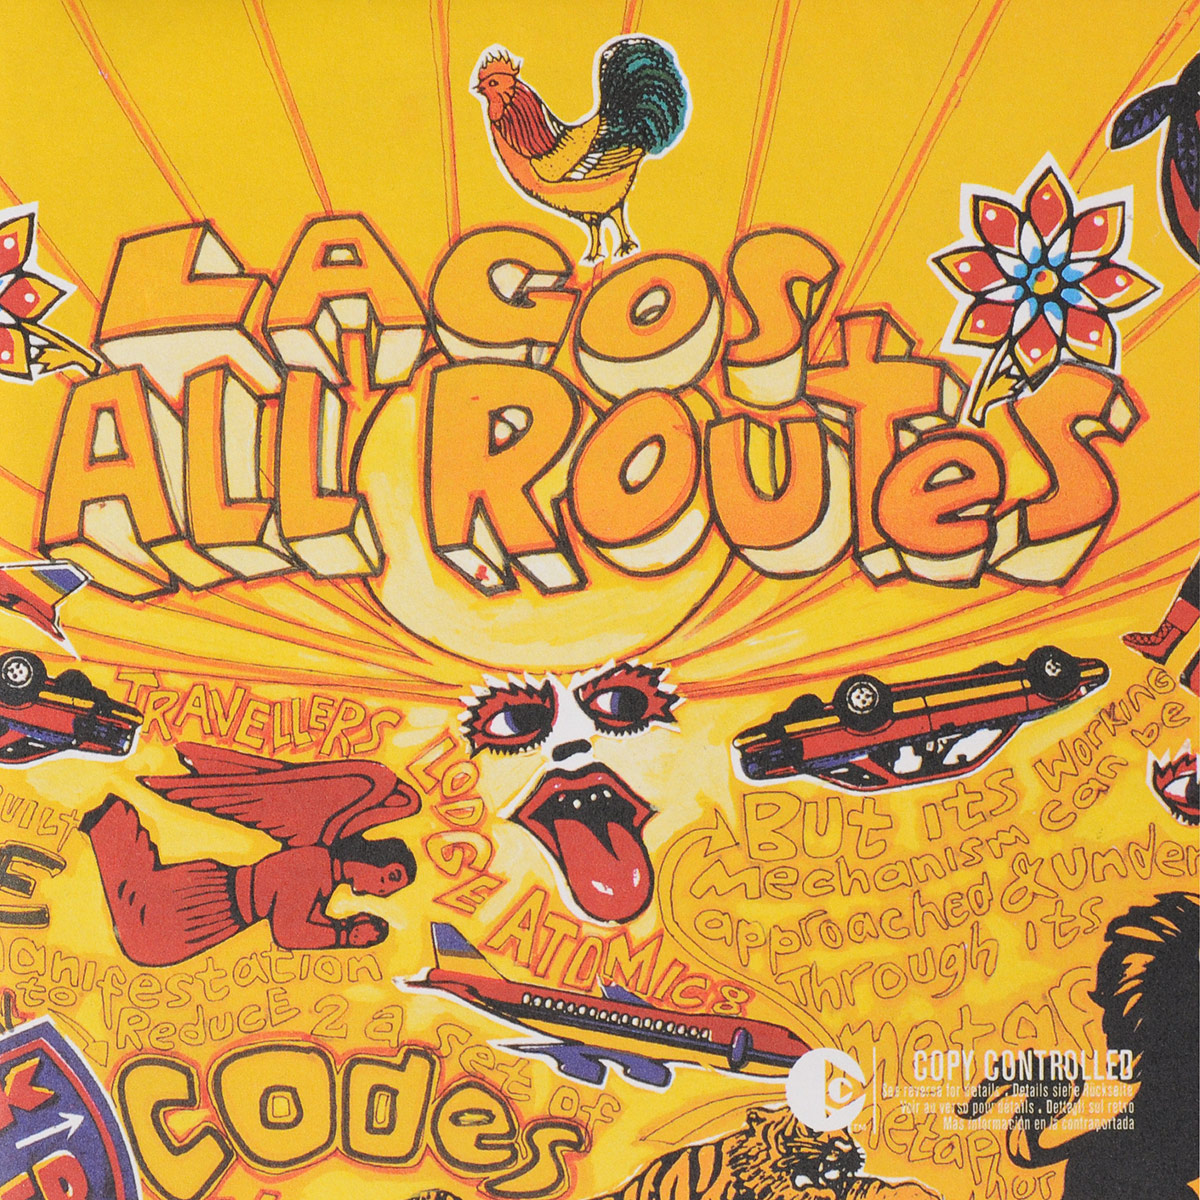 VARIOUS ARTISTS. LAGOS ALL ROUTES